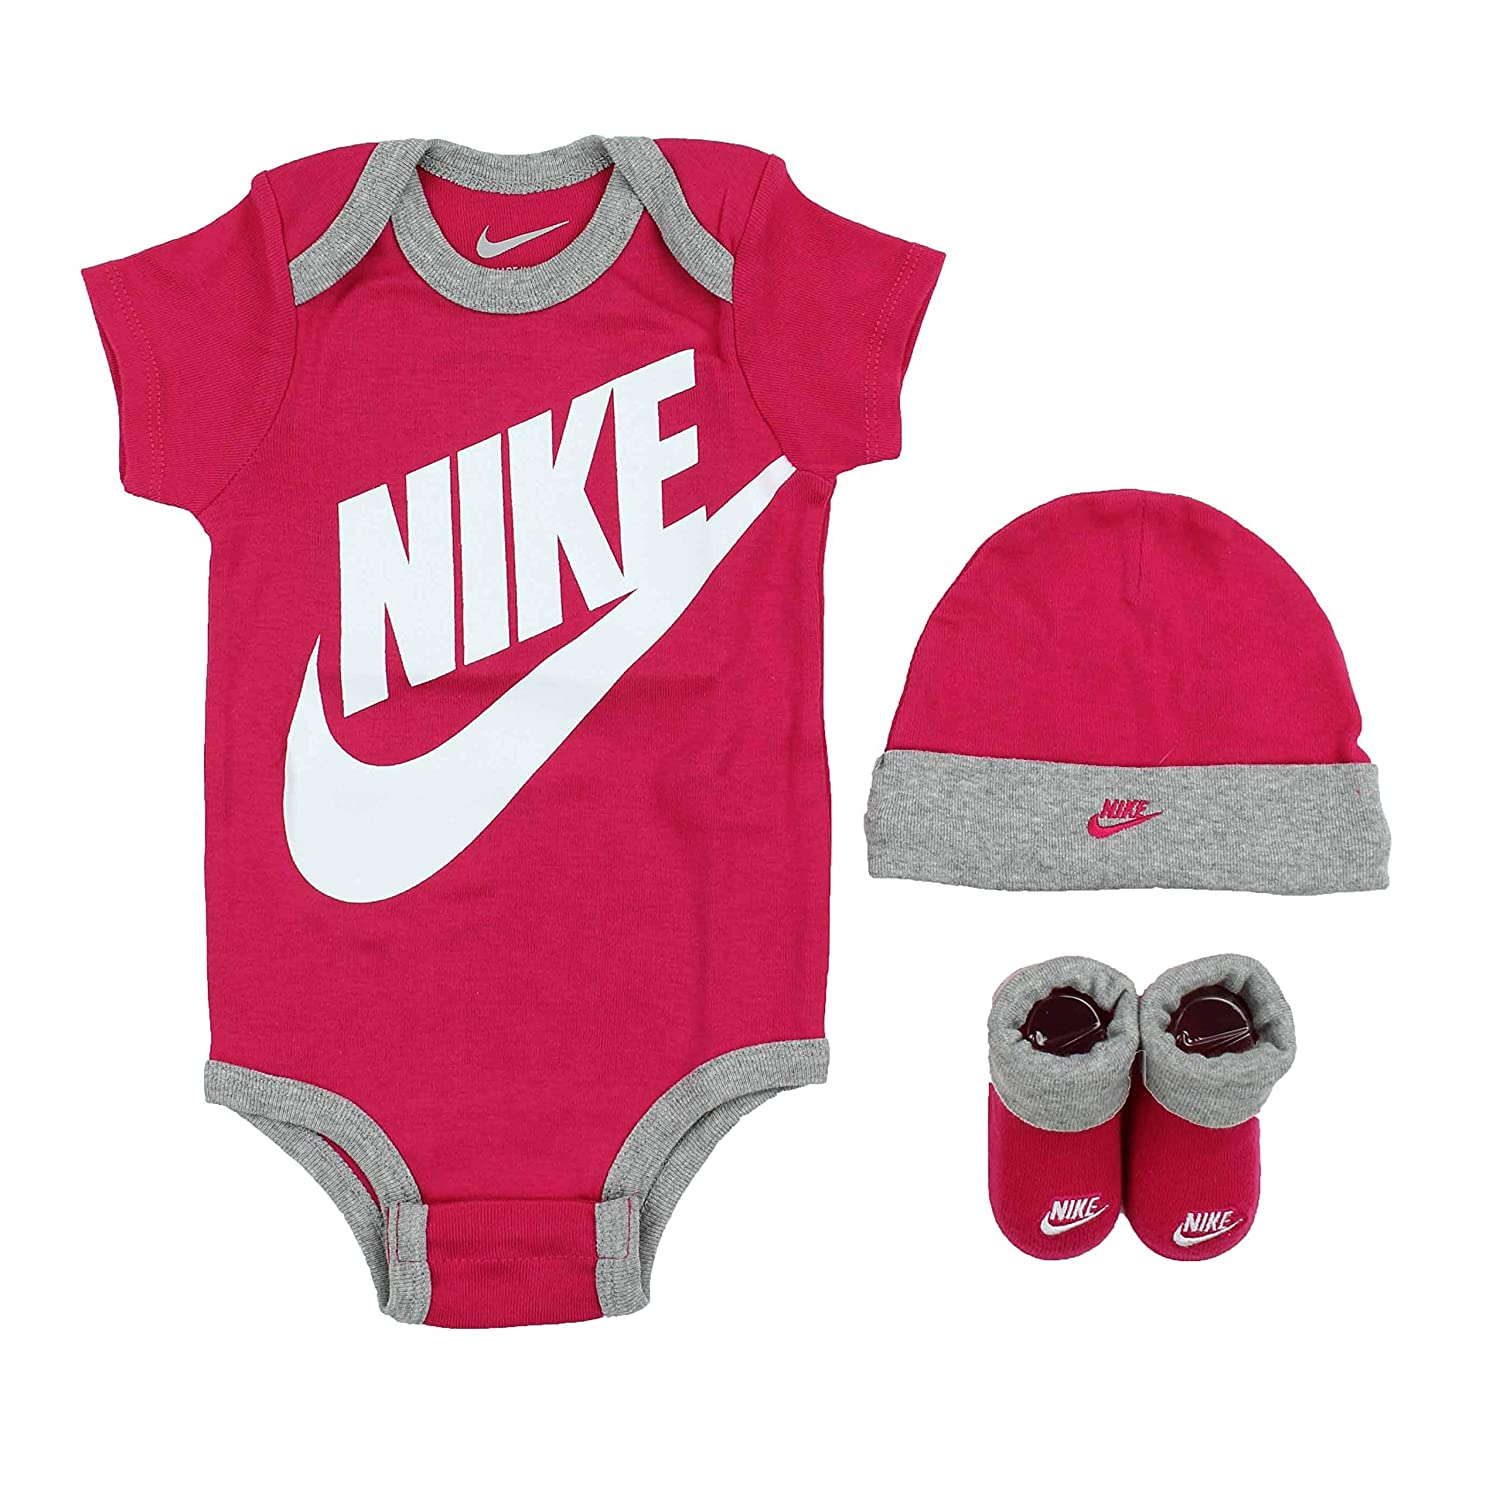 a956473e7db3d Nike Futura Logo 3 Piece Infant Set  Amazon.ca  Clothing   Accessories